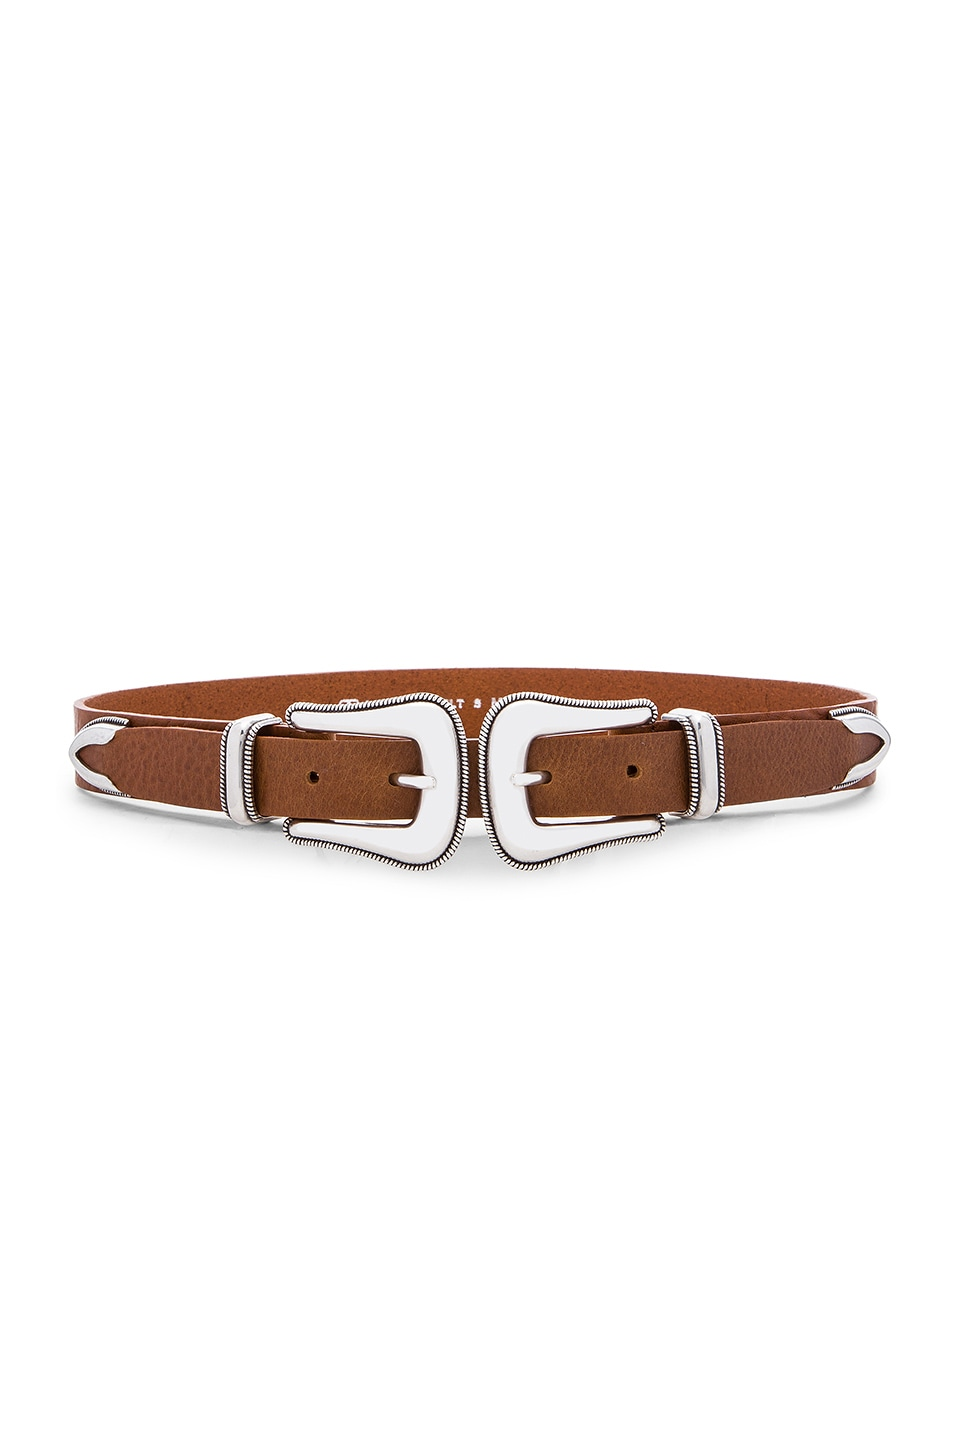 B-Low the Belt Gaucho Waist Belt in Luggage